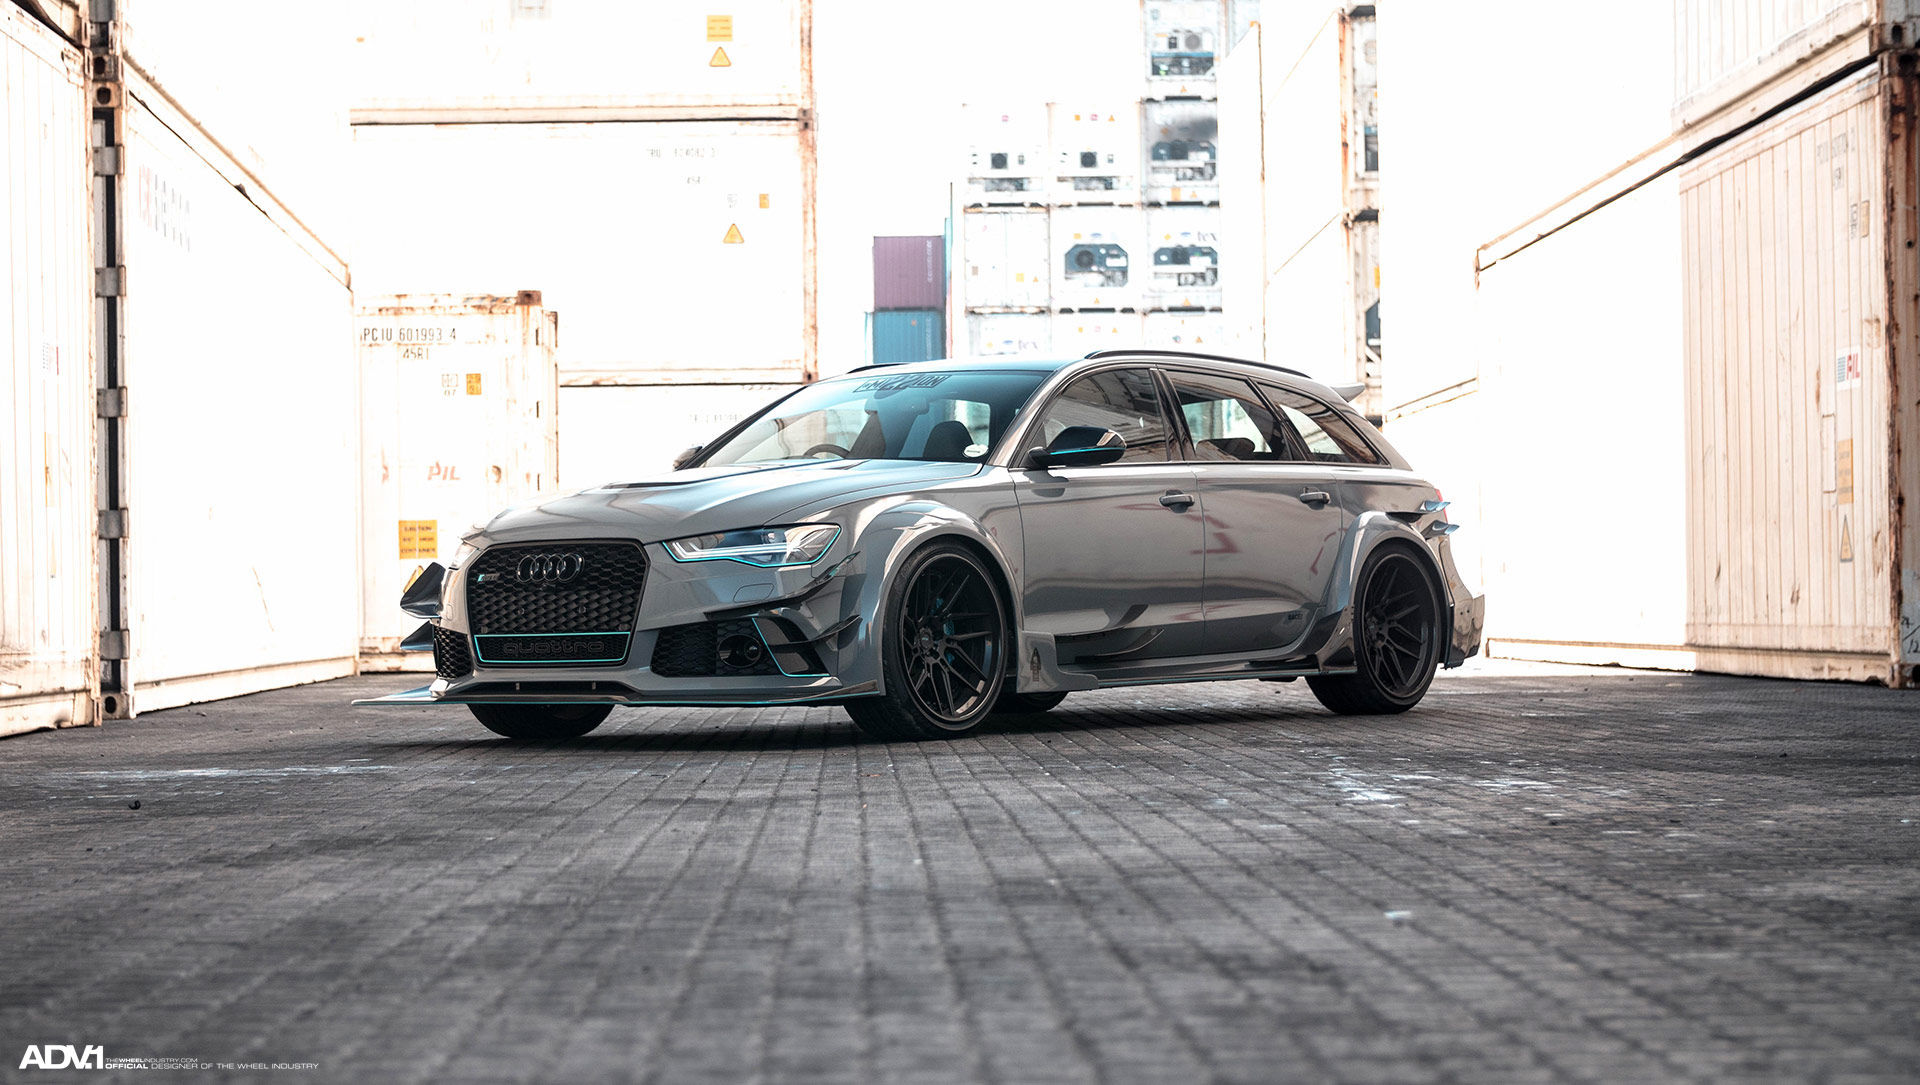 Audi RS 6 | Nardo Gray Carbon Fiber Widebody Audi RS6 Avant - ADV.1 Wheels ADV7R Track Spec CS